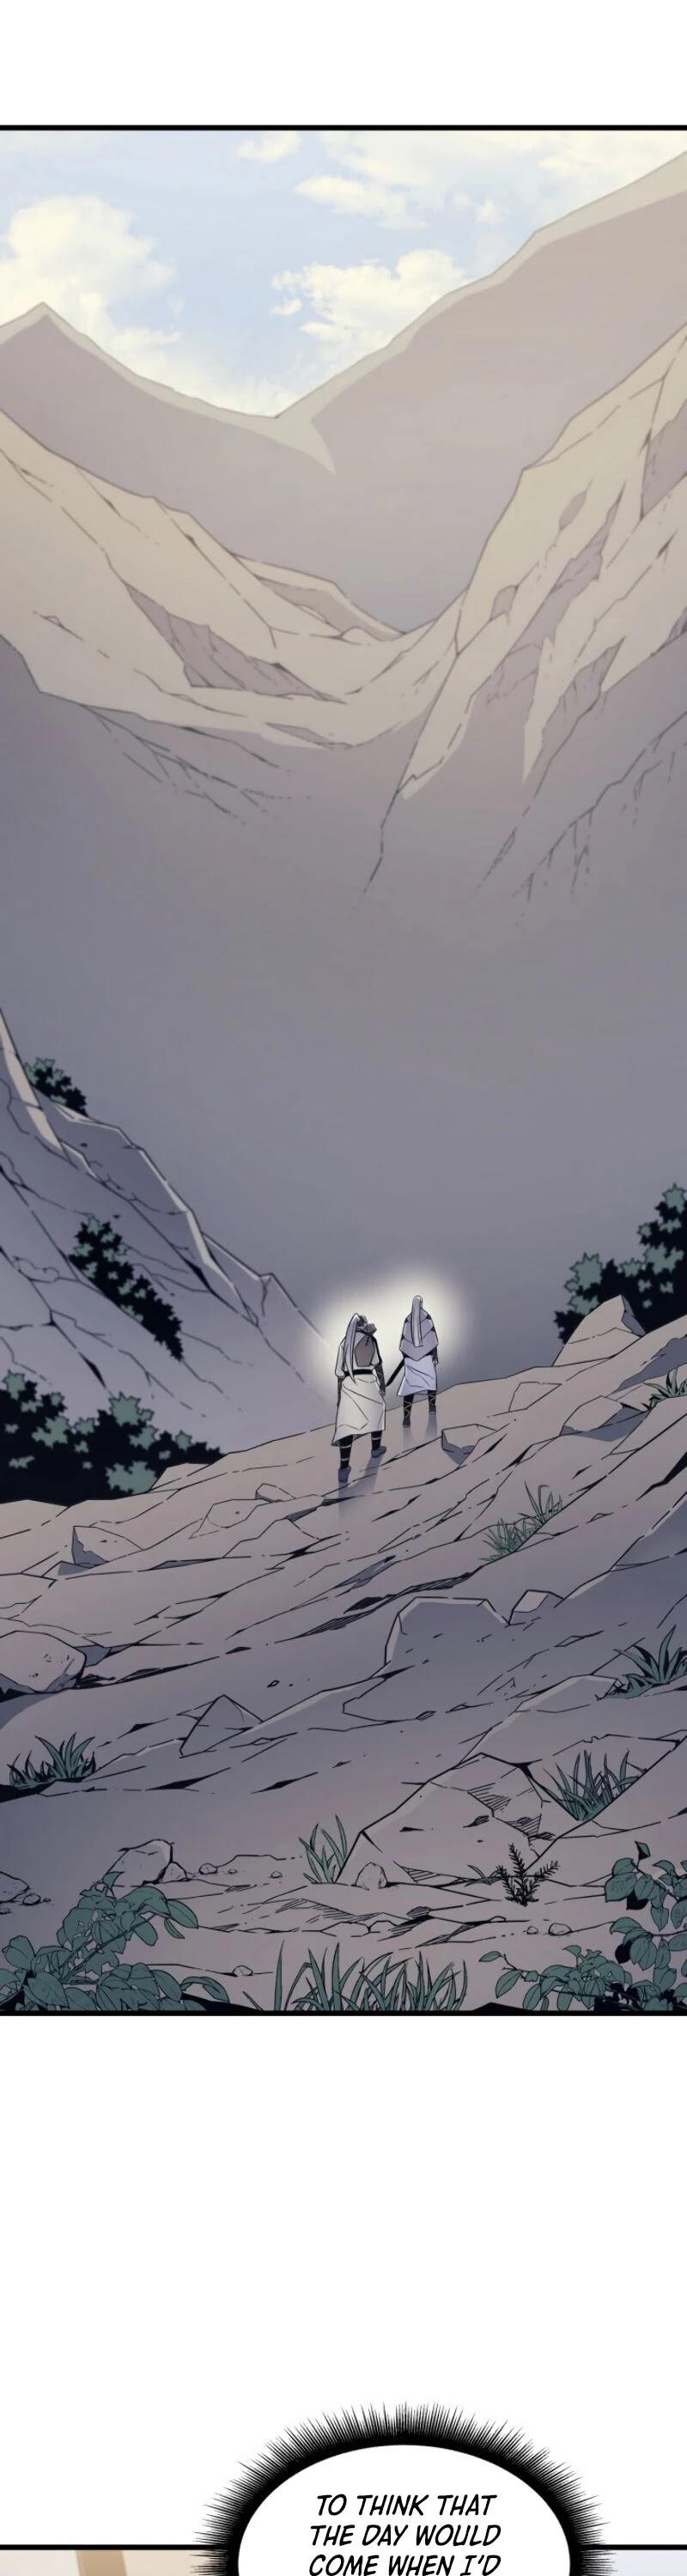 The Great Mage Returns After 4000 Years Chapter 91 page 35 - Mangakakalots.com